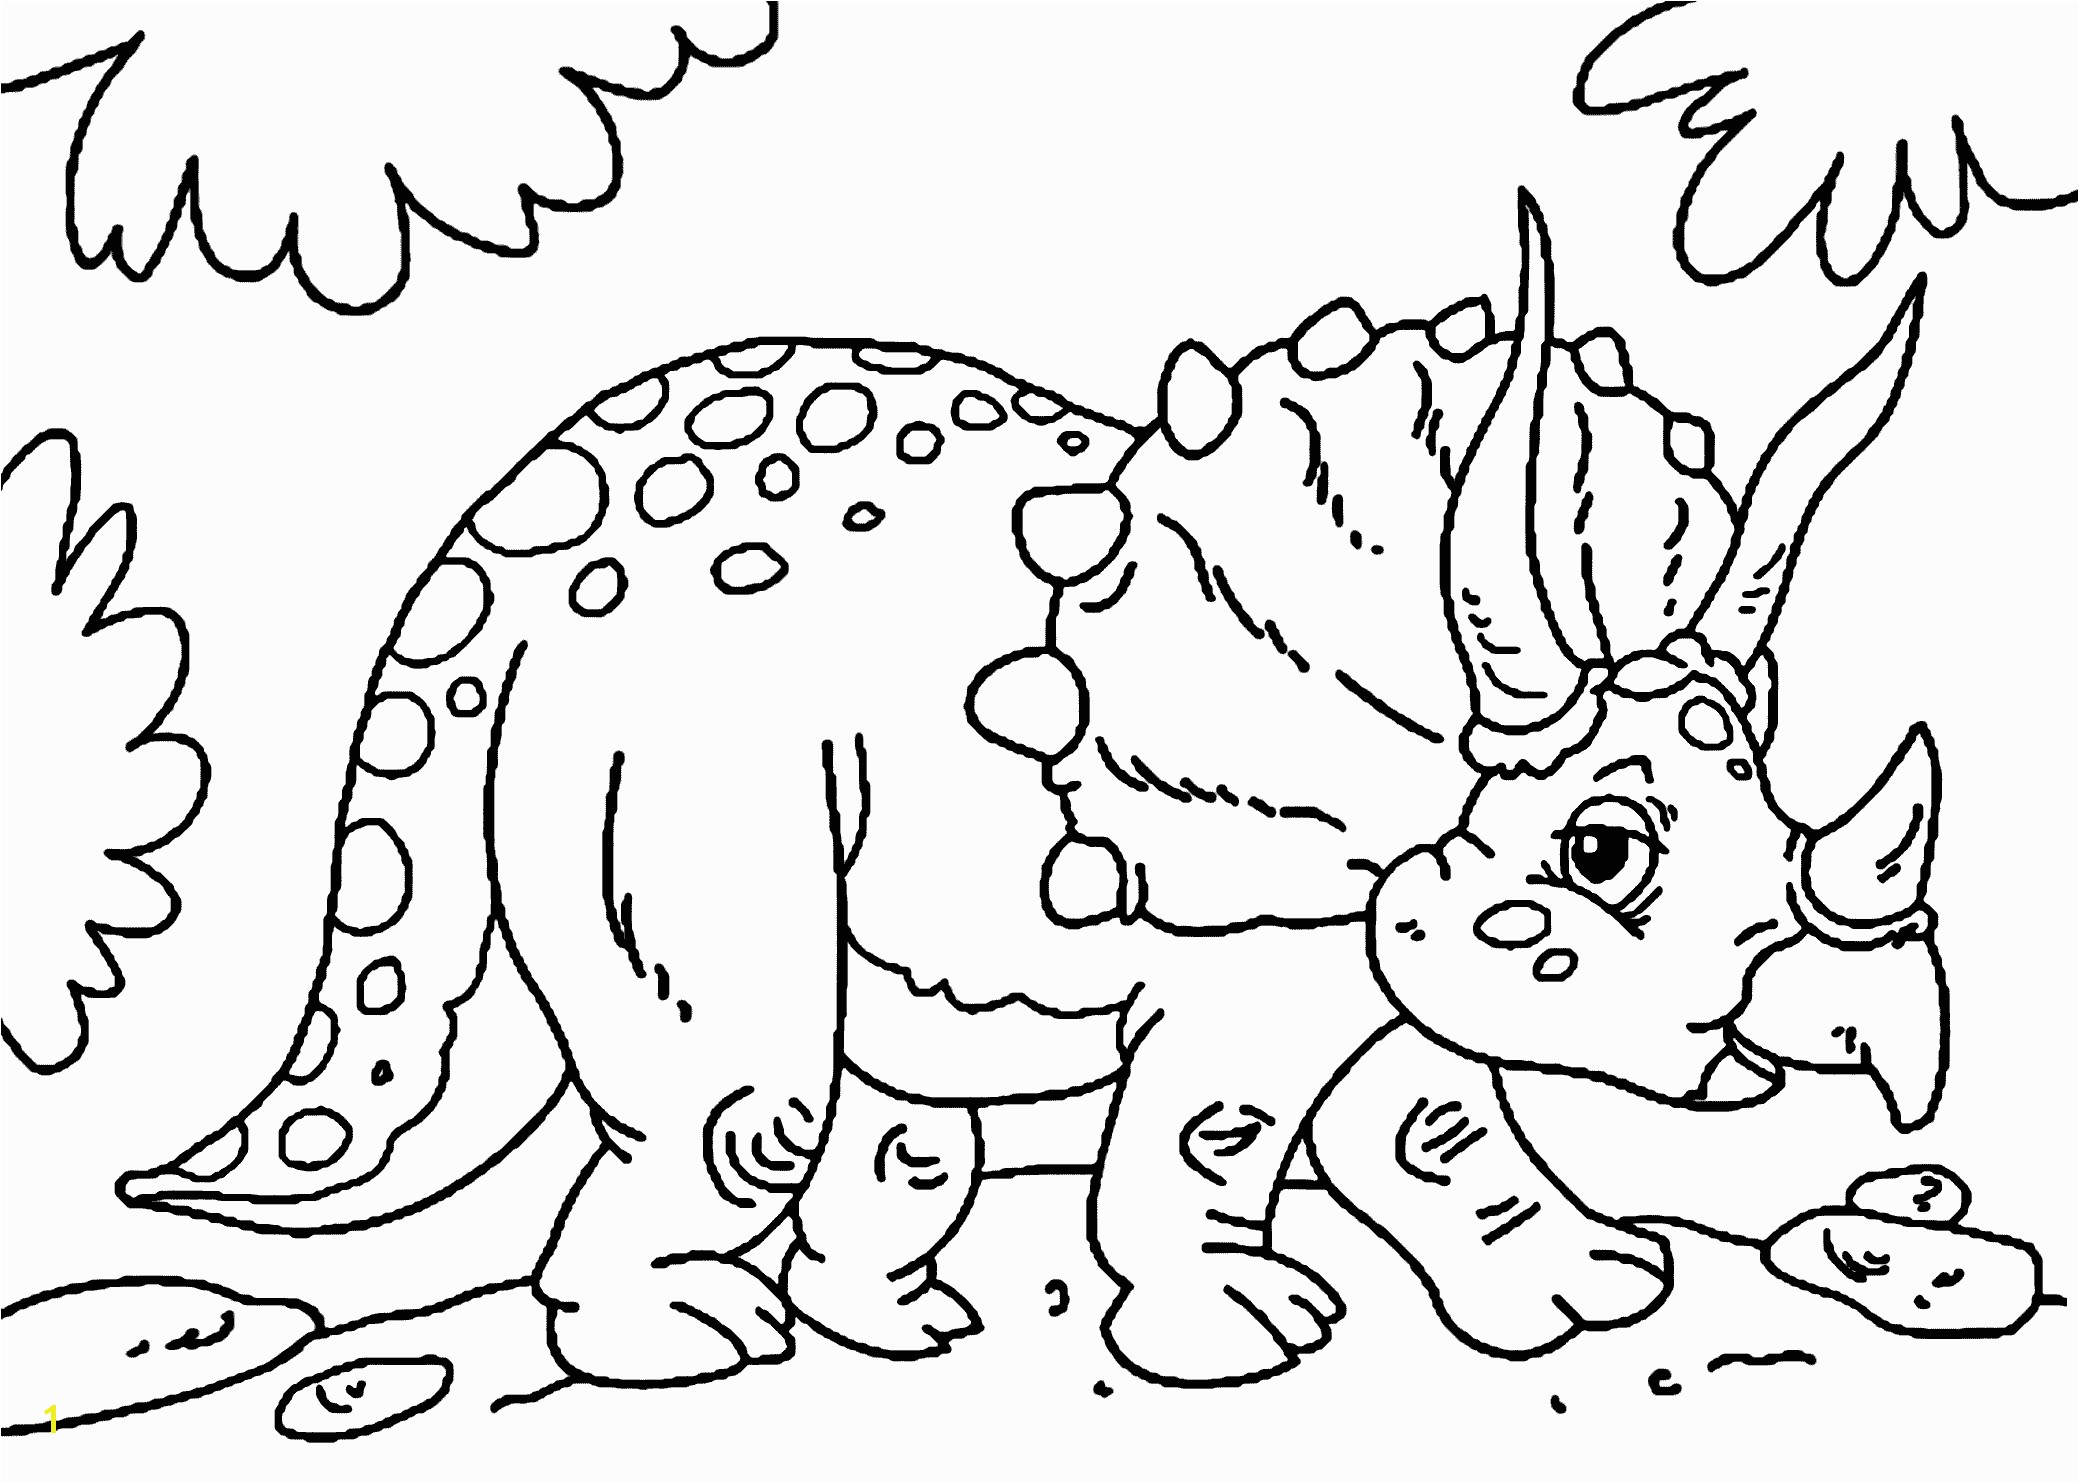 Cute little triceratops dinosaur coloring pages for kids printable free